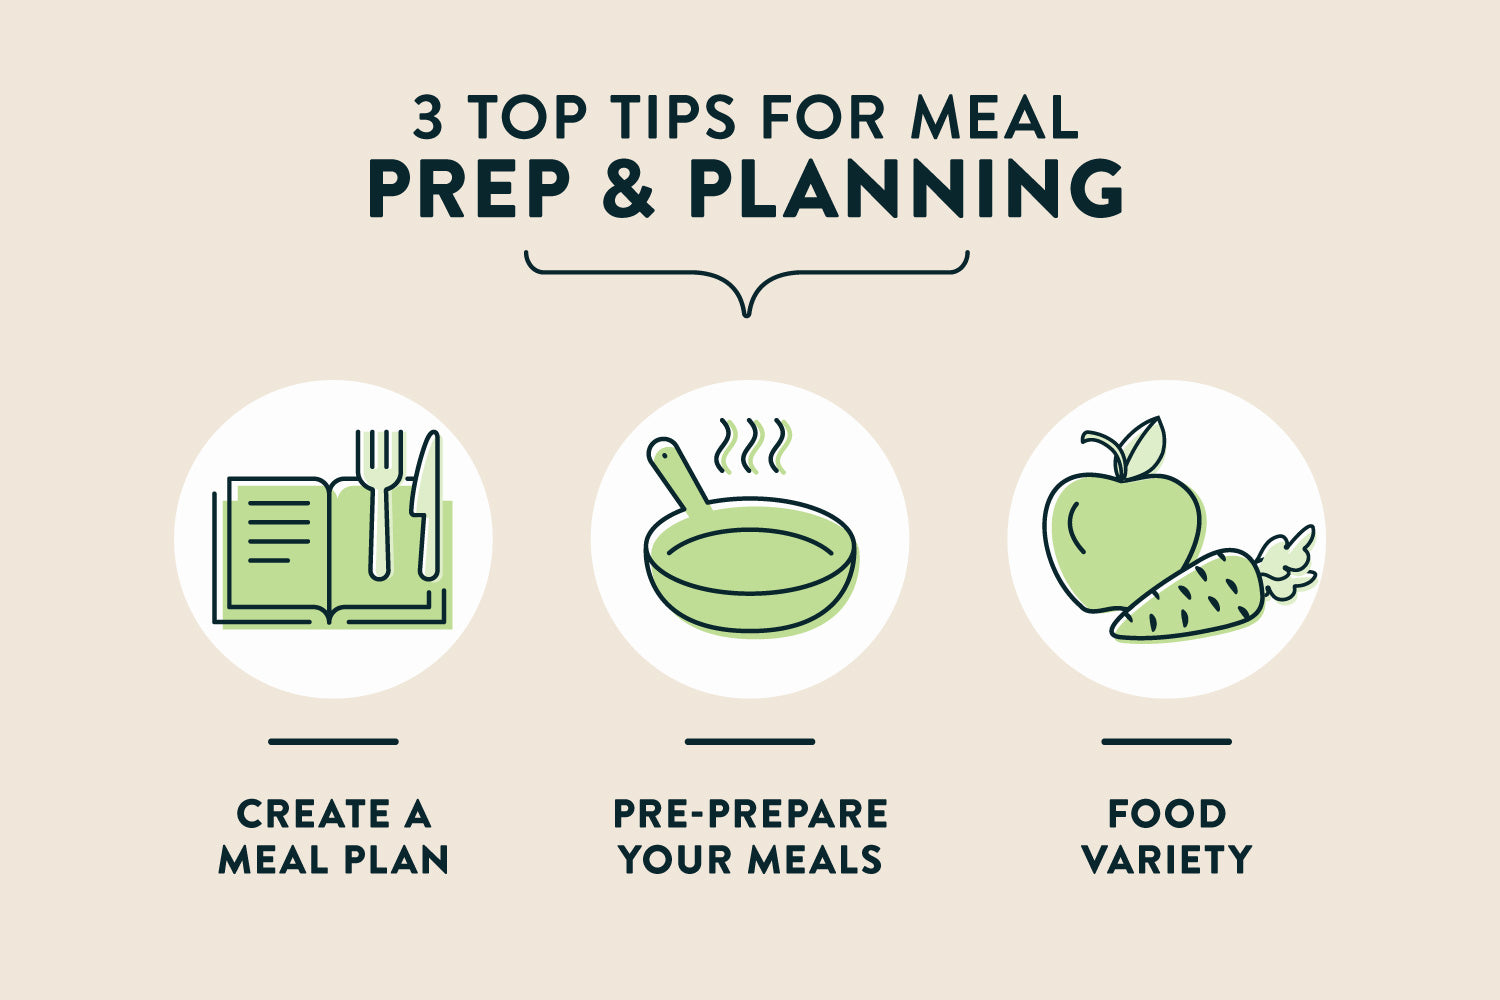 3 Top Tips for Meal Planning